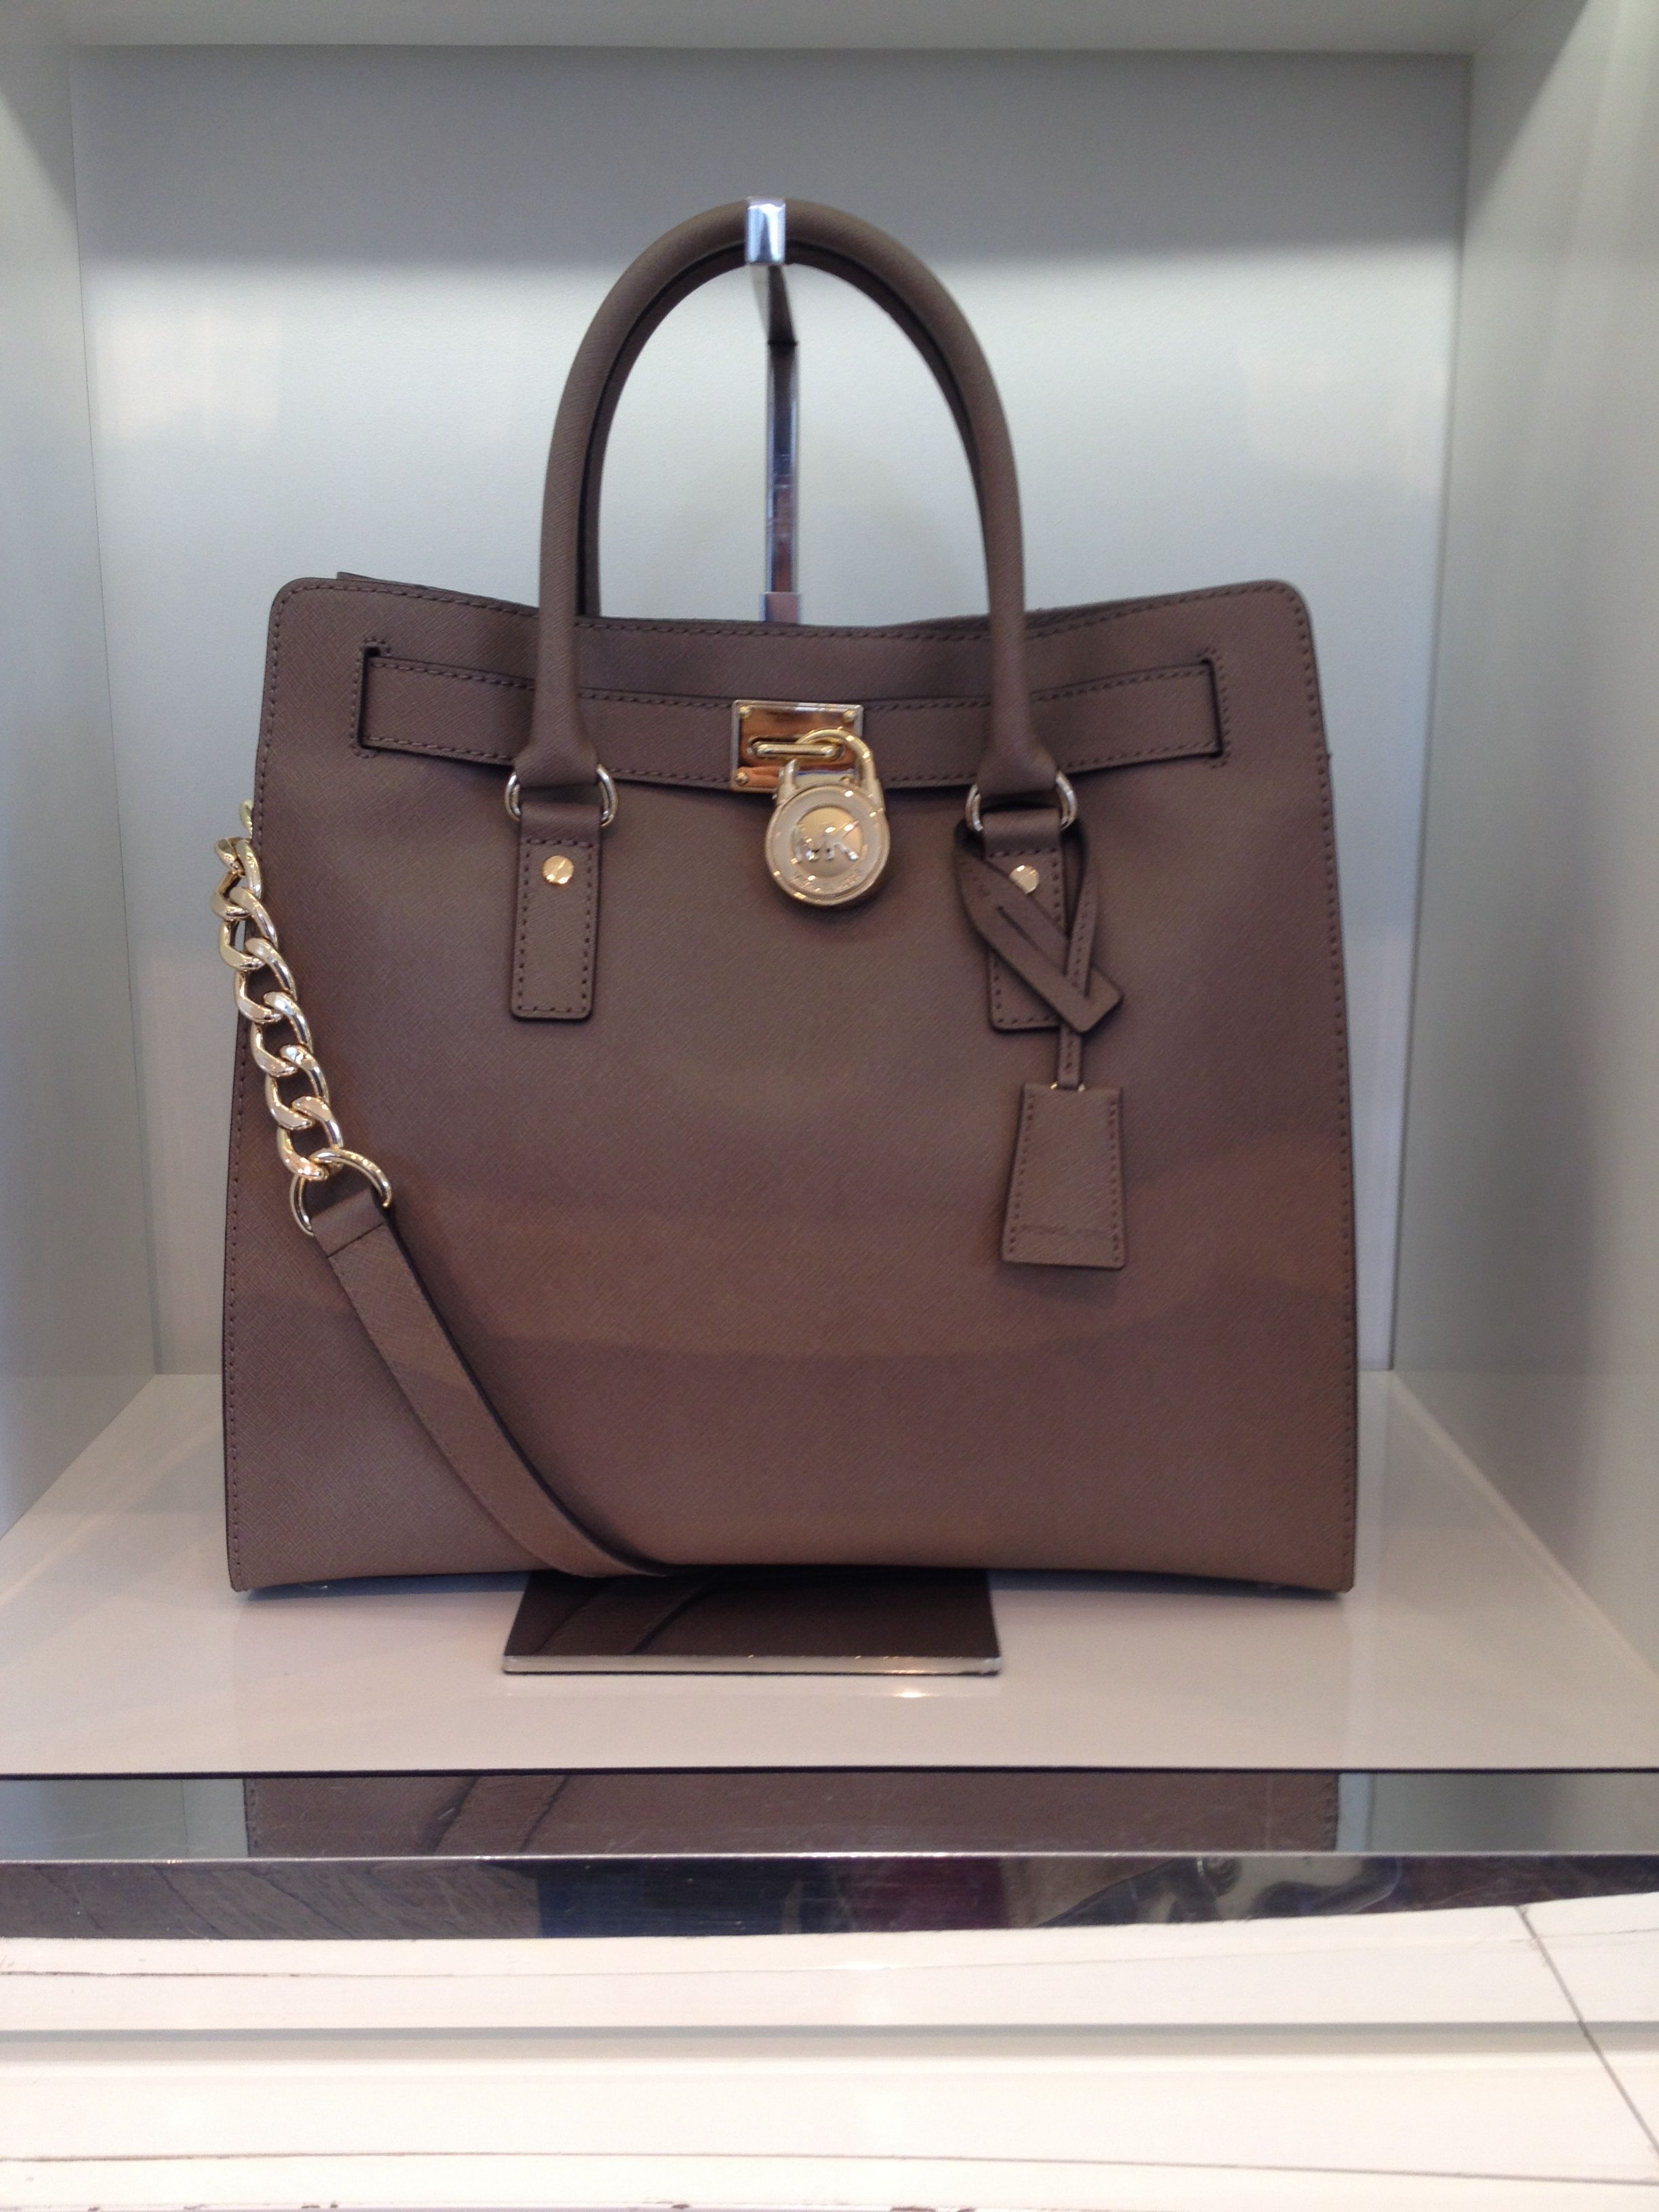 Michael Kors Handbag Got This In Light Grey Silver Hardware One Black With Gold Love